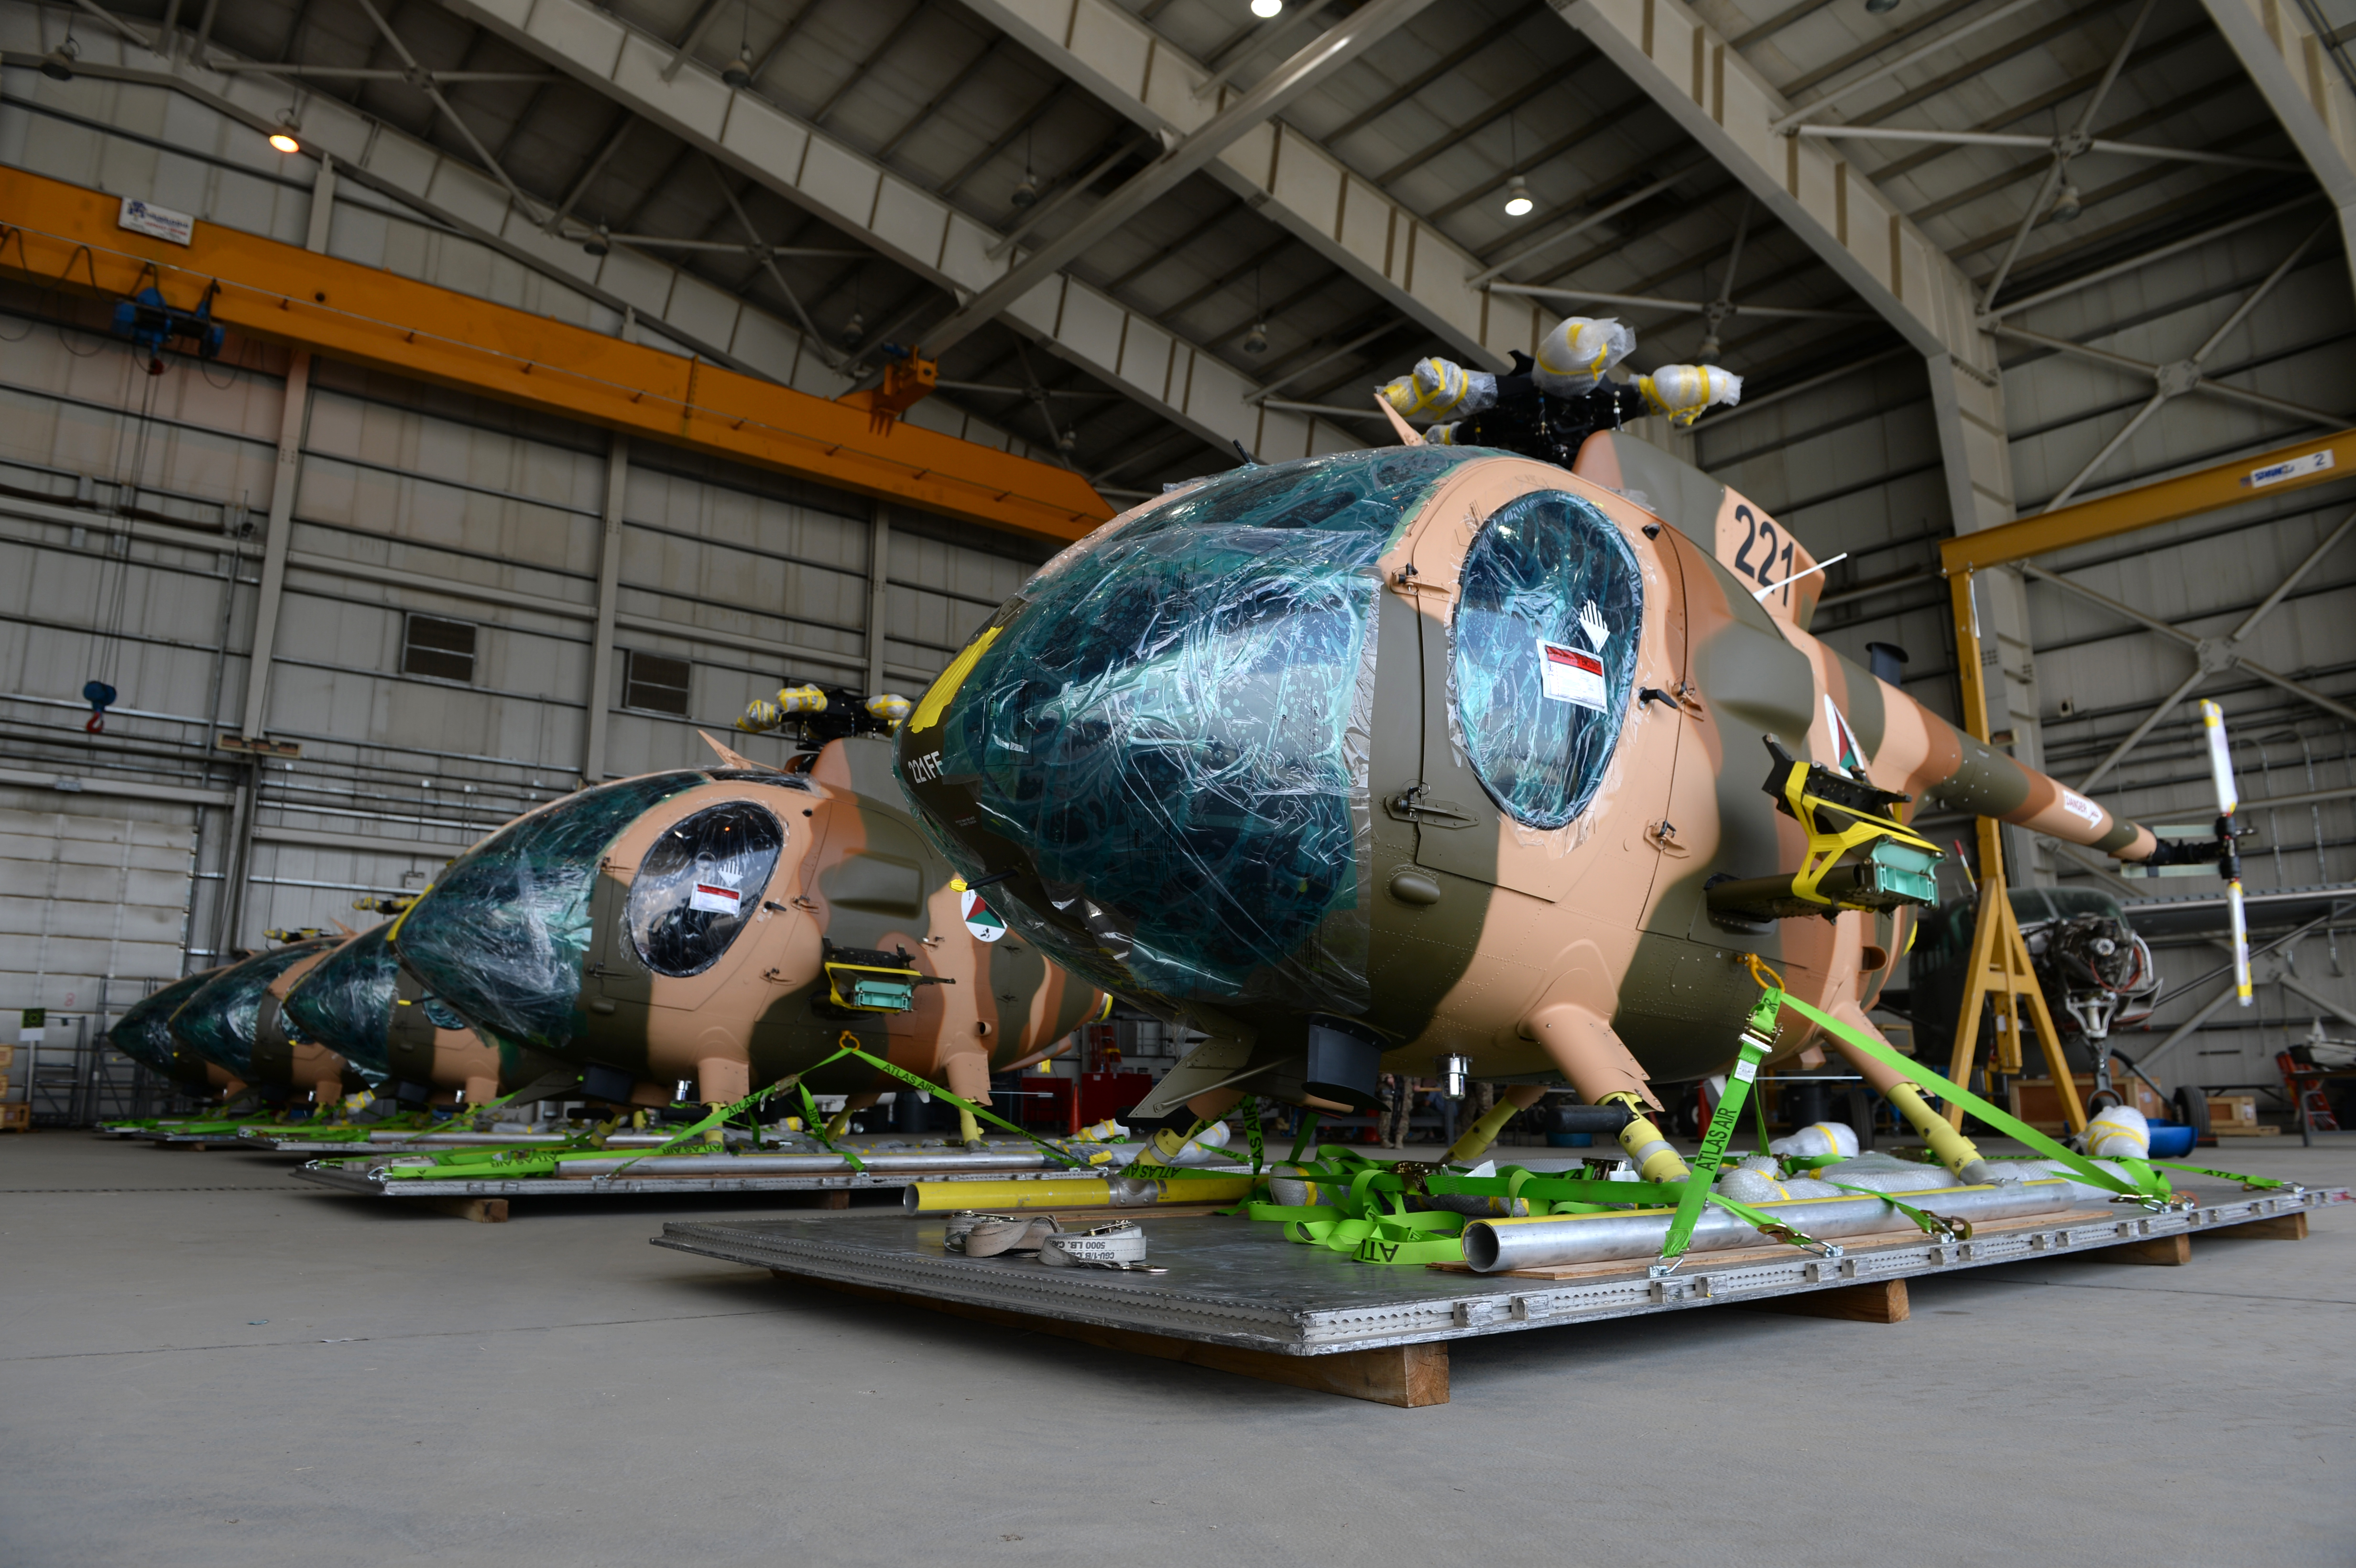 MD Helicopters Delivers First Six MD 530F Cayuse Warrior Scout Attack Helicopters to Afghan Air Force  MD Helicopters